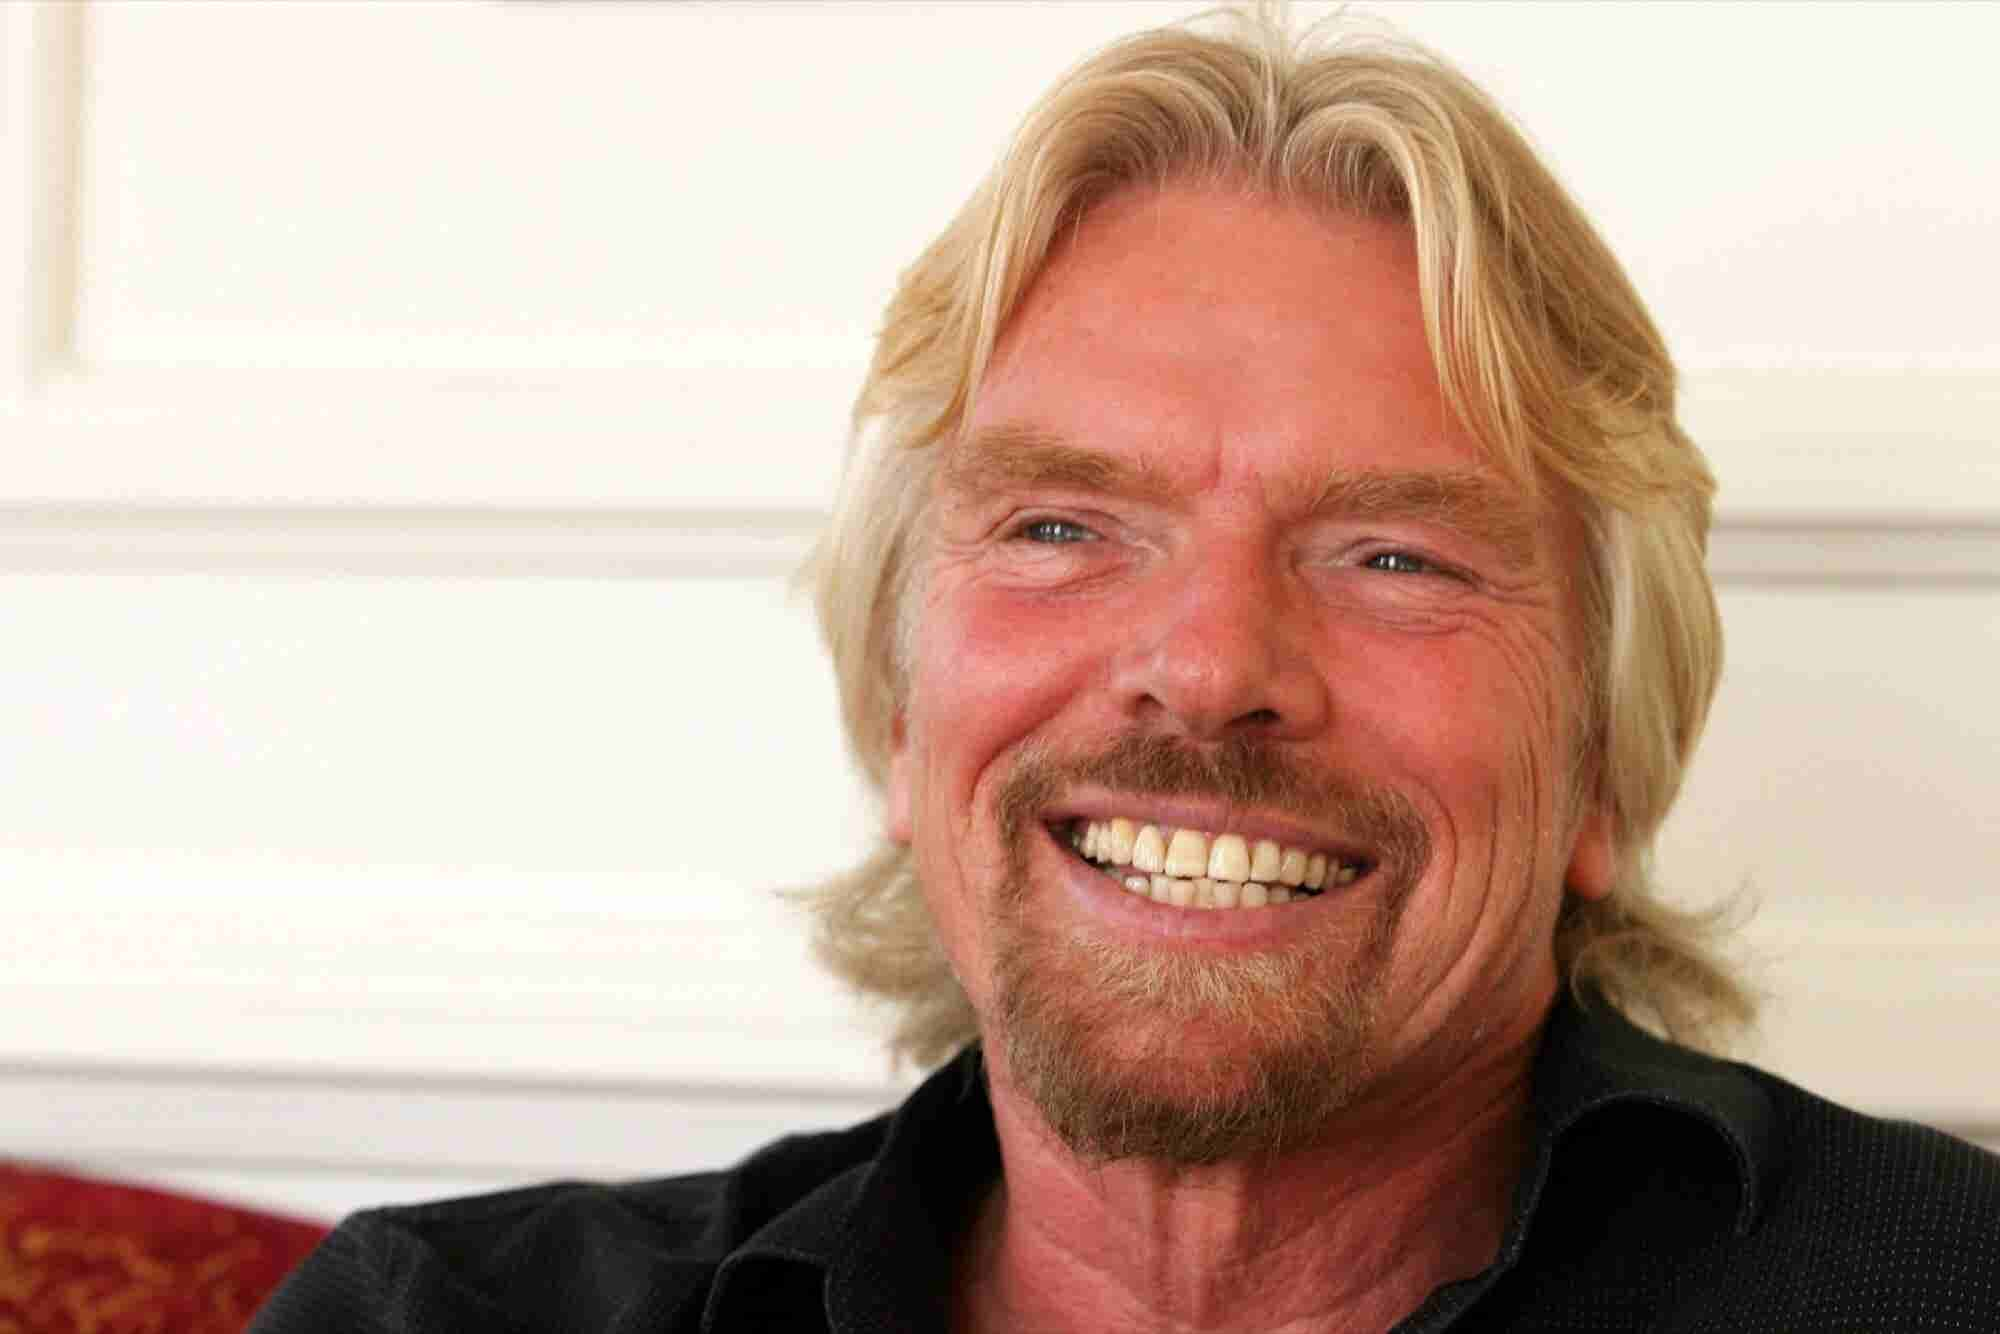 Richard Branson on How to Keep Track of Your New Year's Resolutions